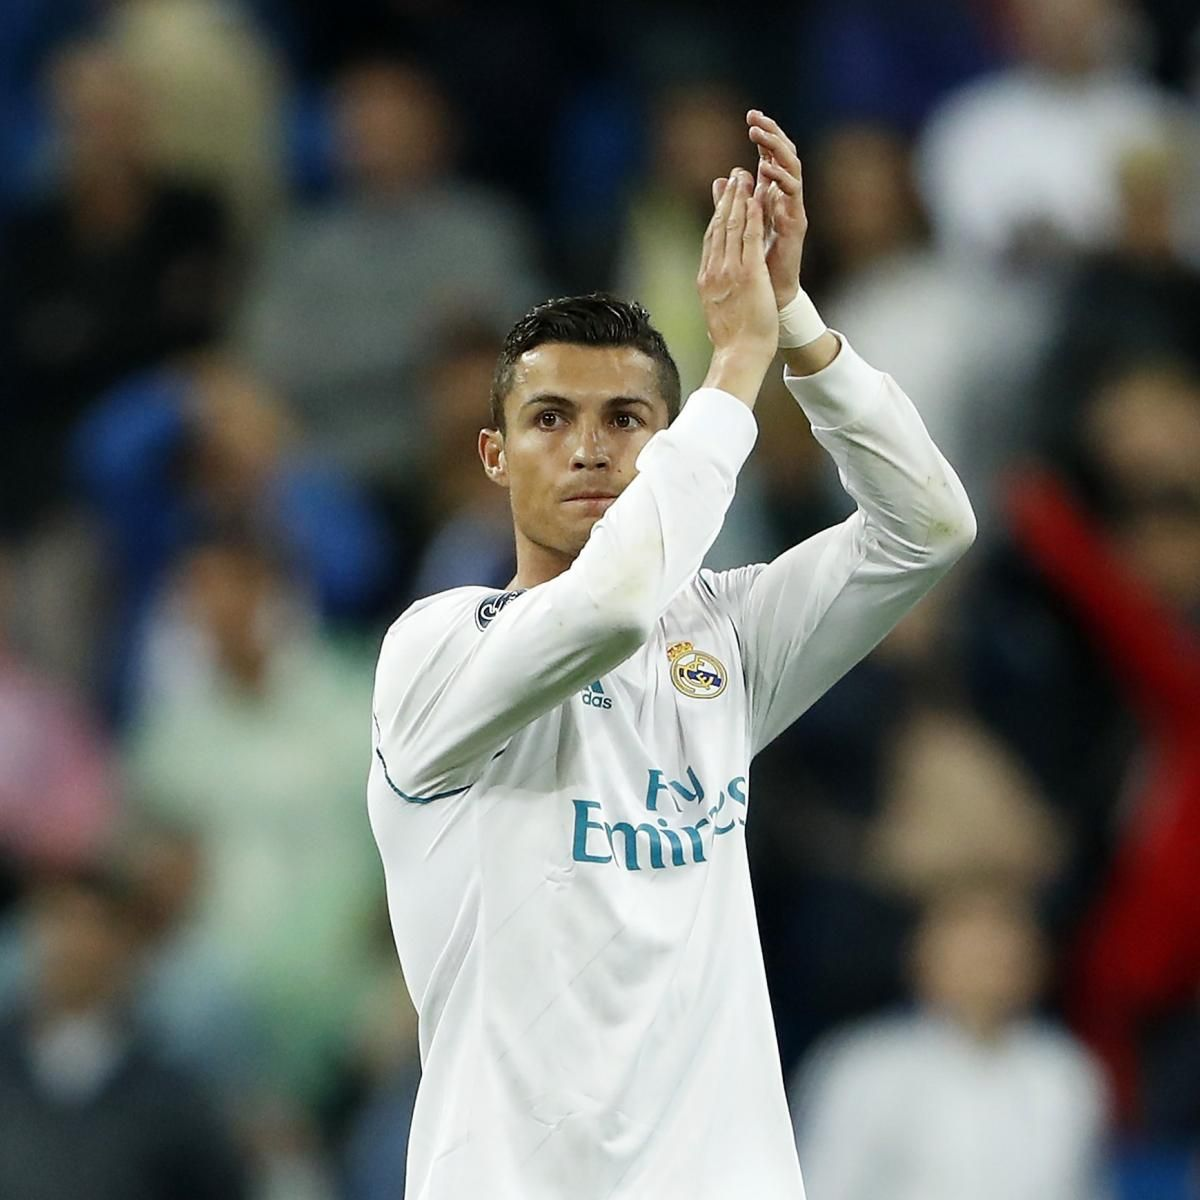 Keylor navas pays tribute to cristiano ronaldo sports mole - Best 25 Real Madrid Team News Ideas On Pinterest Real Madrid Football Cr7 News And Real Madrid News Now